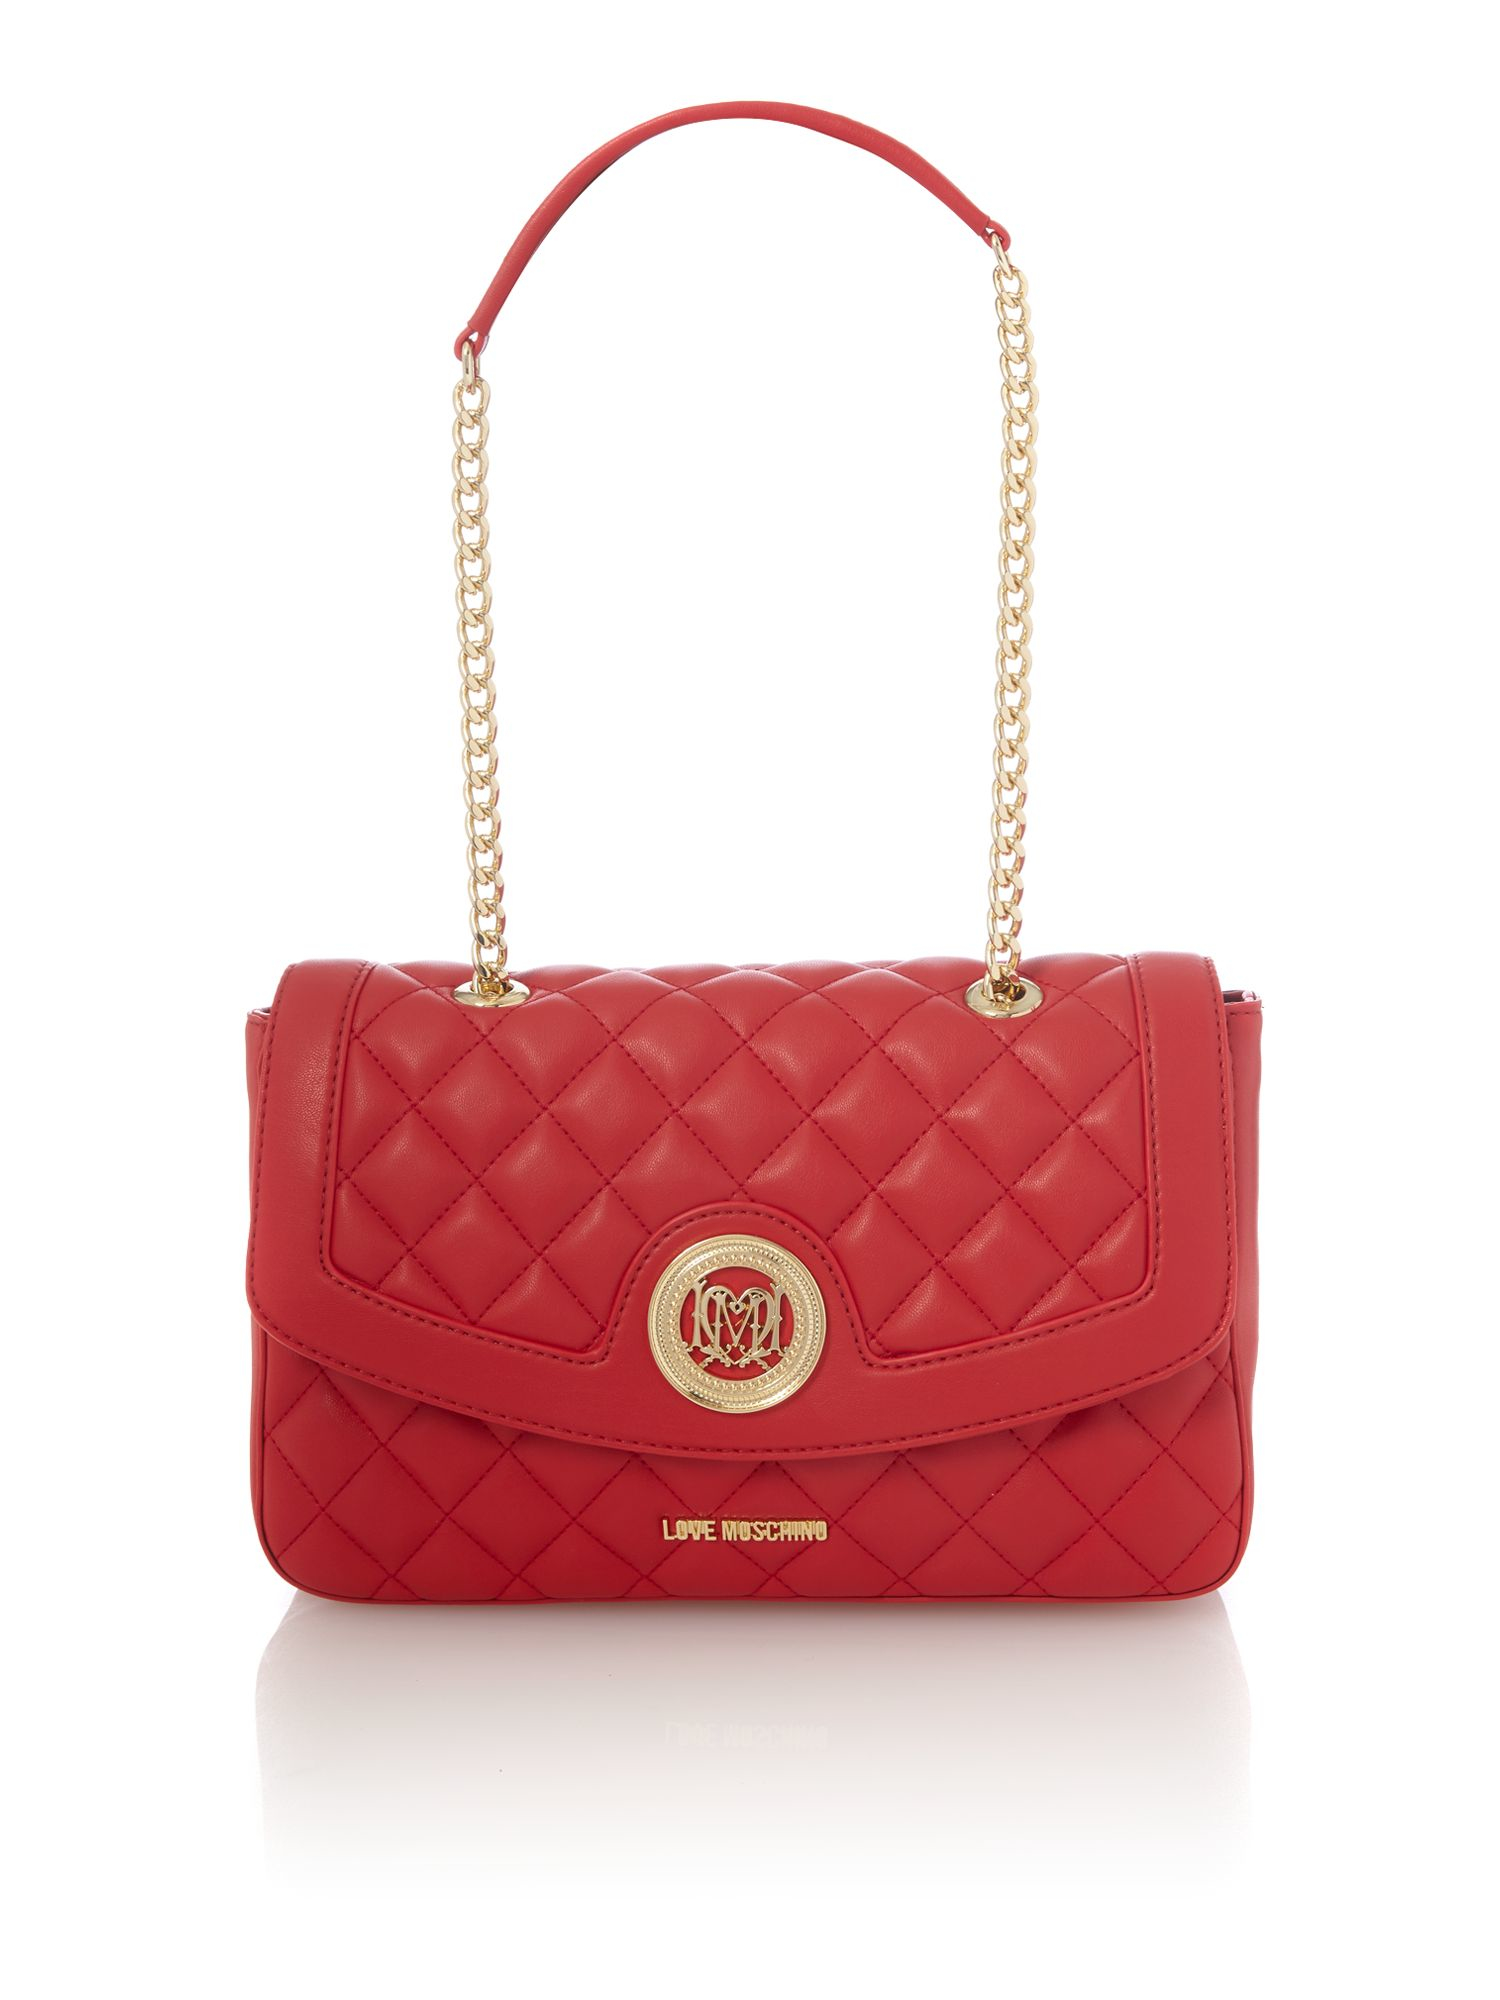 love moschino superquilt red flapover shoulder bag in red lyst. Black Bedroom Furniture Sets. Home Design Ideas